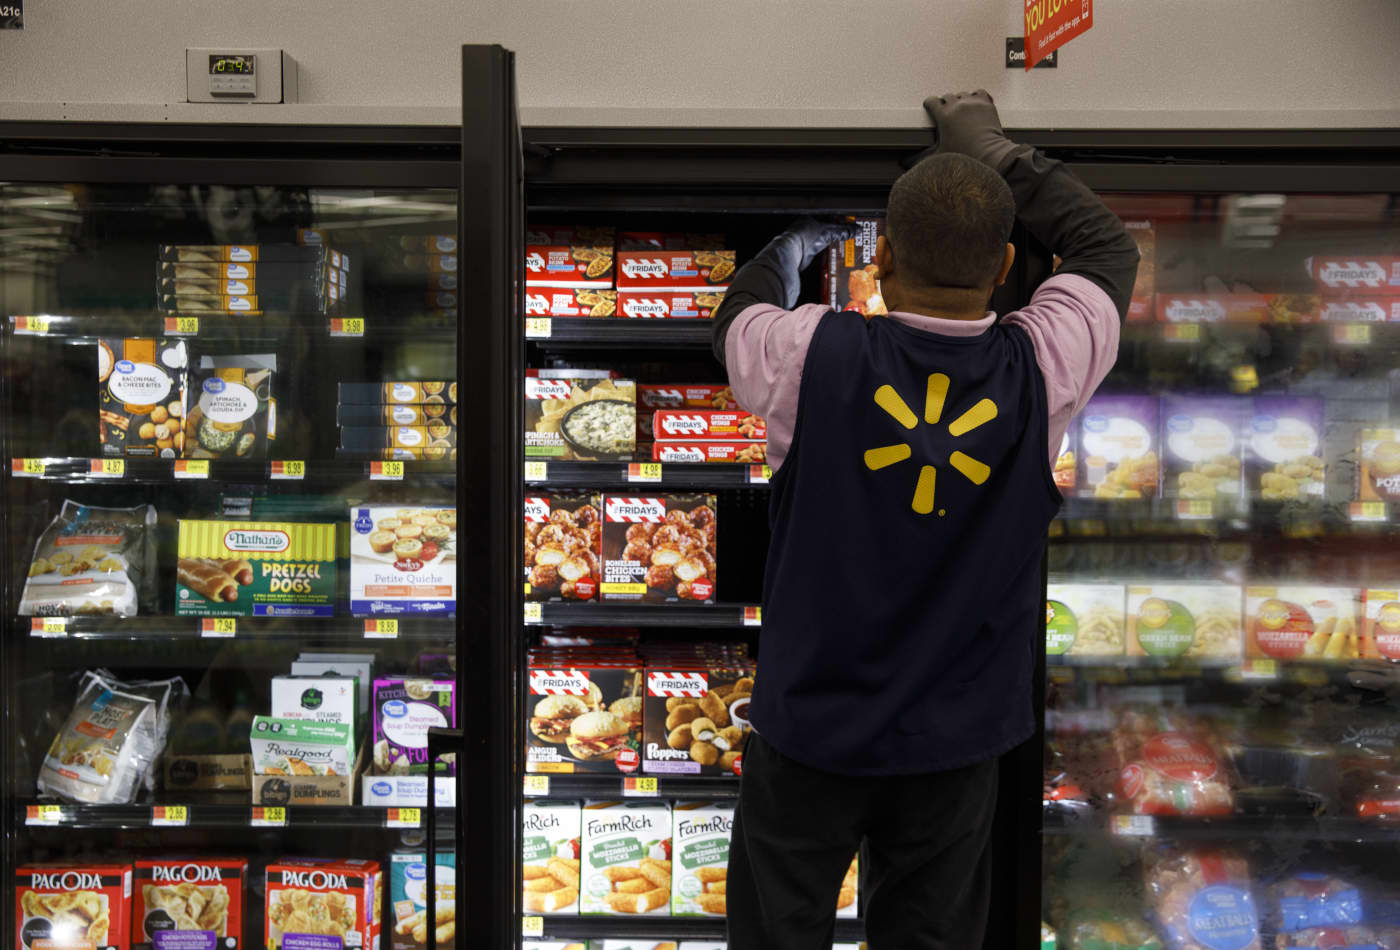 Walmart's grocery business is winning over more affluent shoppers